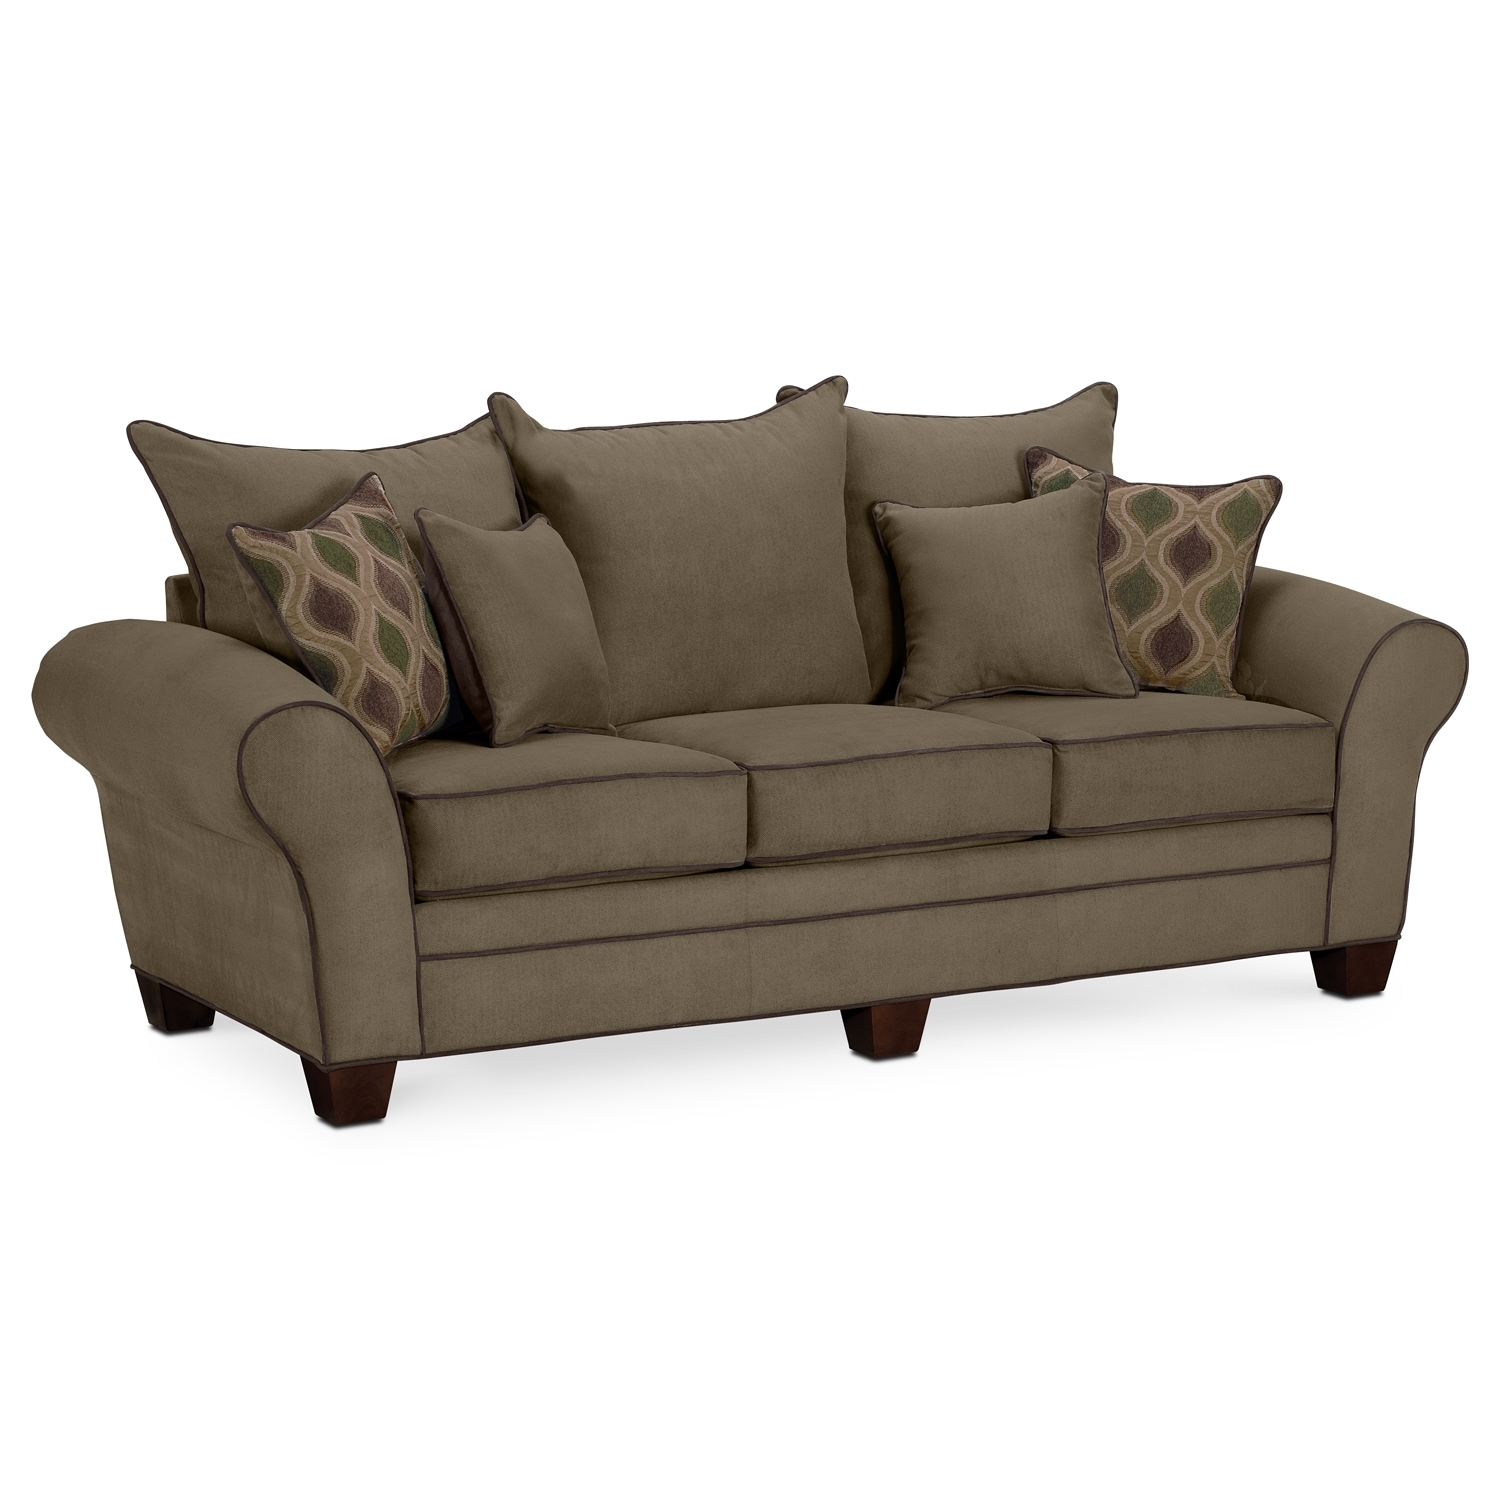 Value City Living Room Furniture